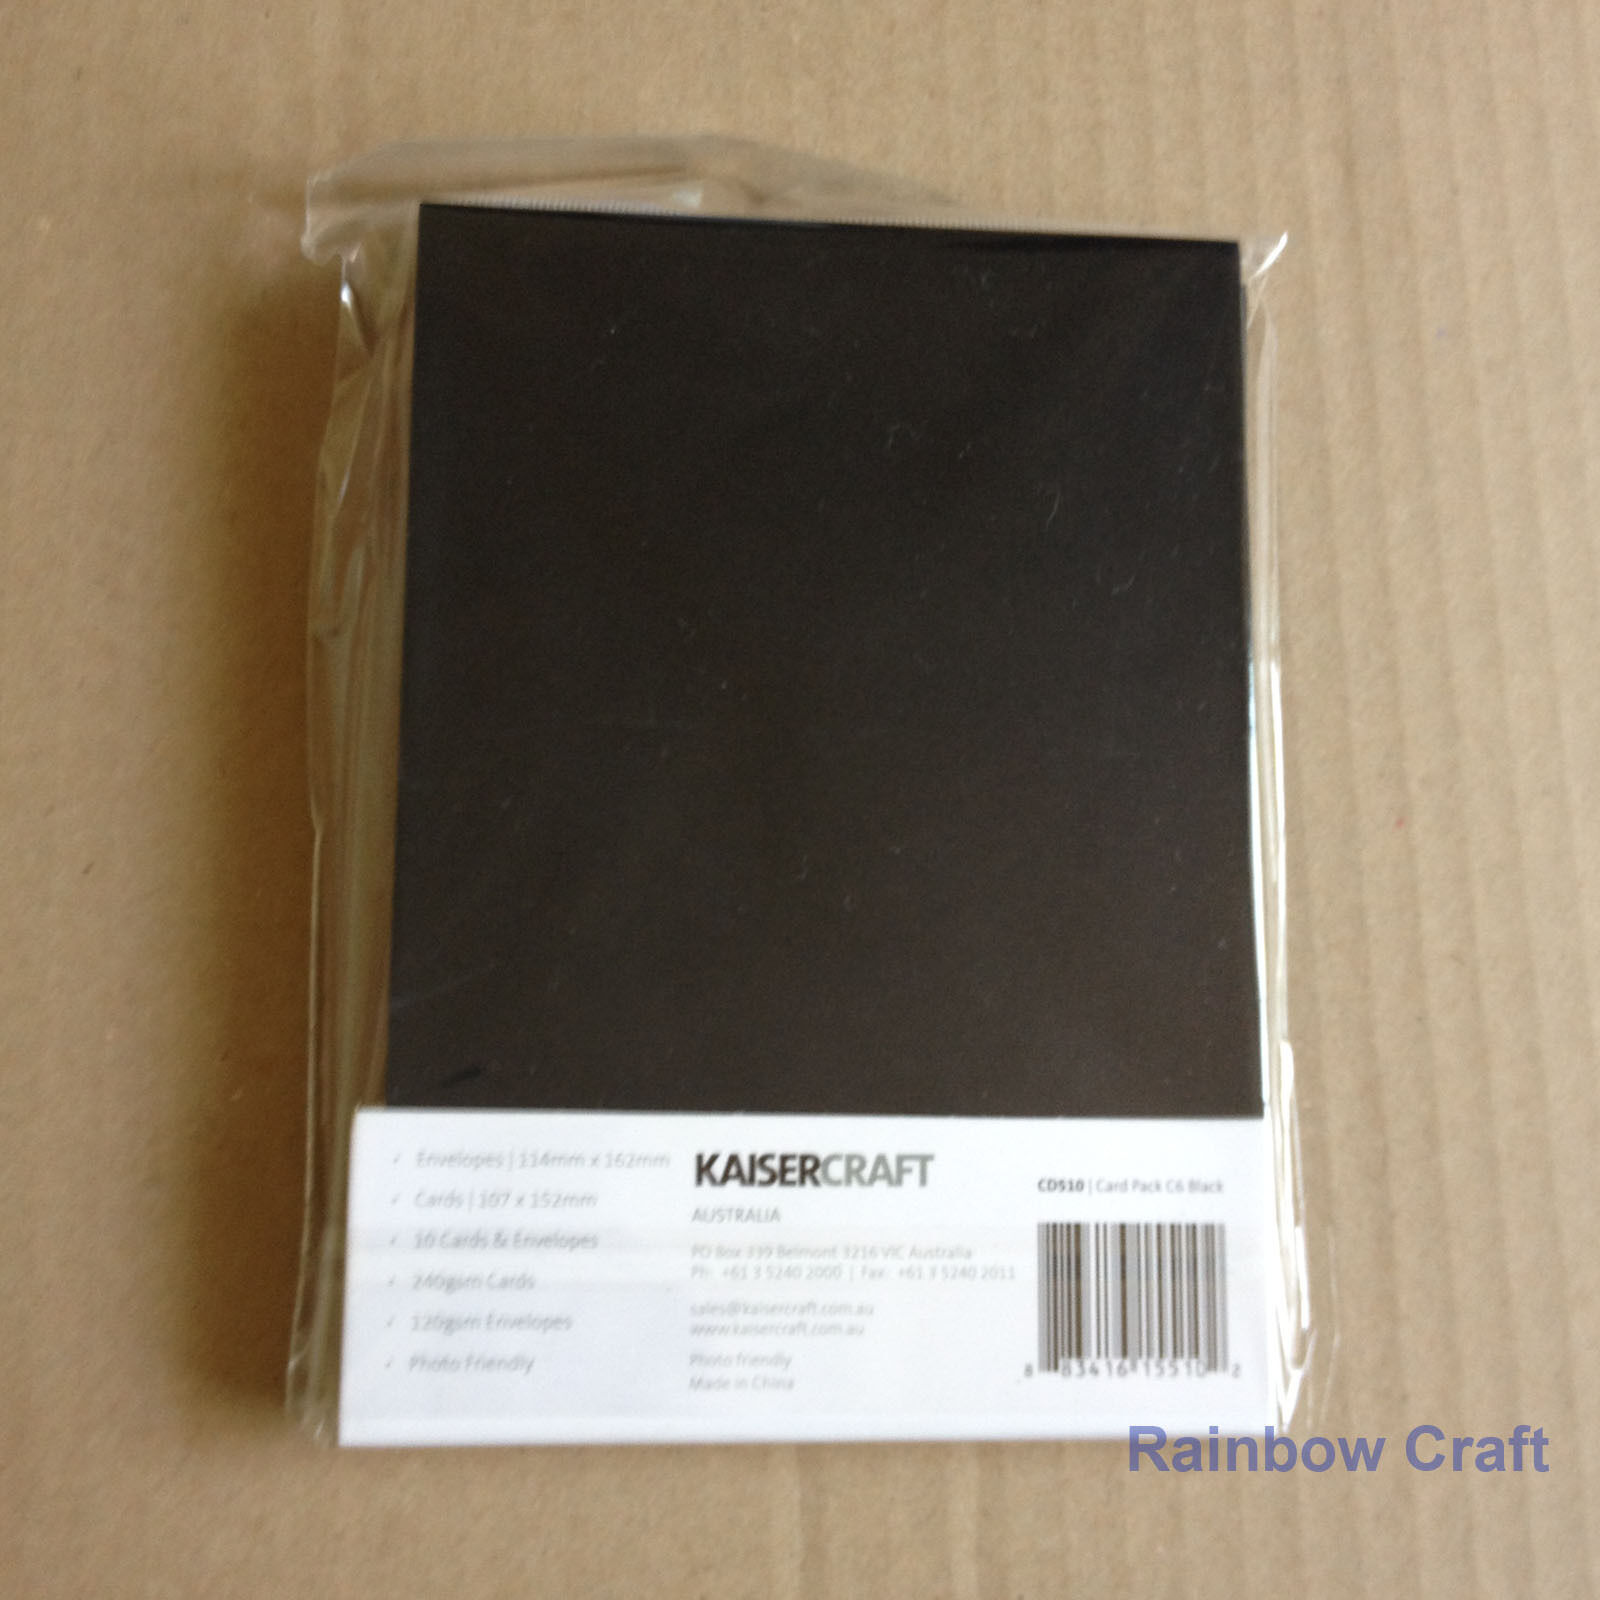 Kaisercraft 10 blank Cards & Envelopes Square / C6 size (12 selections) - Black - C6